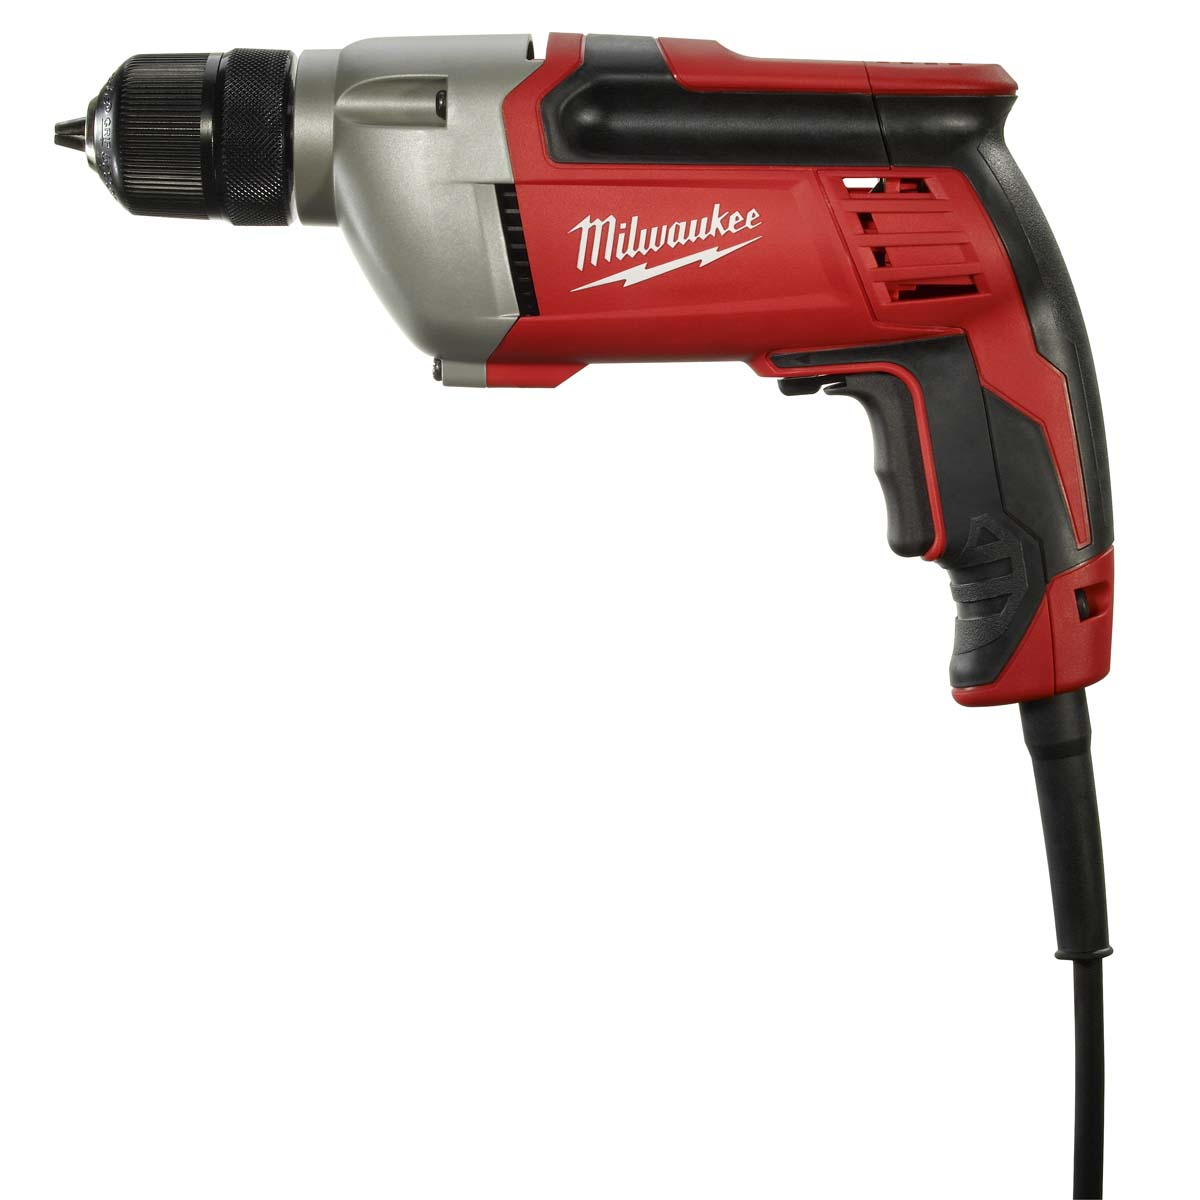 ELECTRIC DRILL, 3/8 IN, 0 TO 2800 RPM, 8.0A